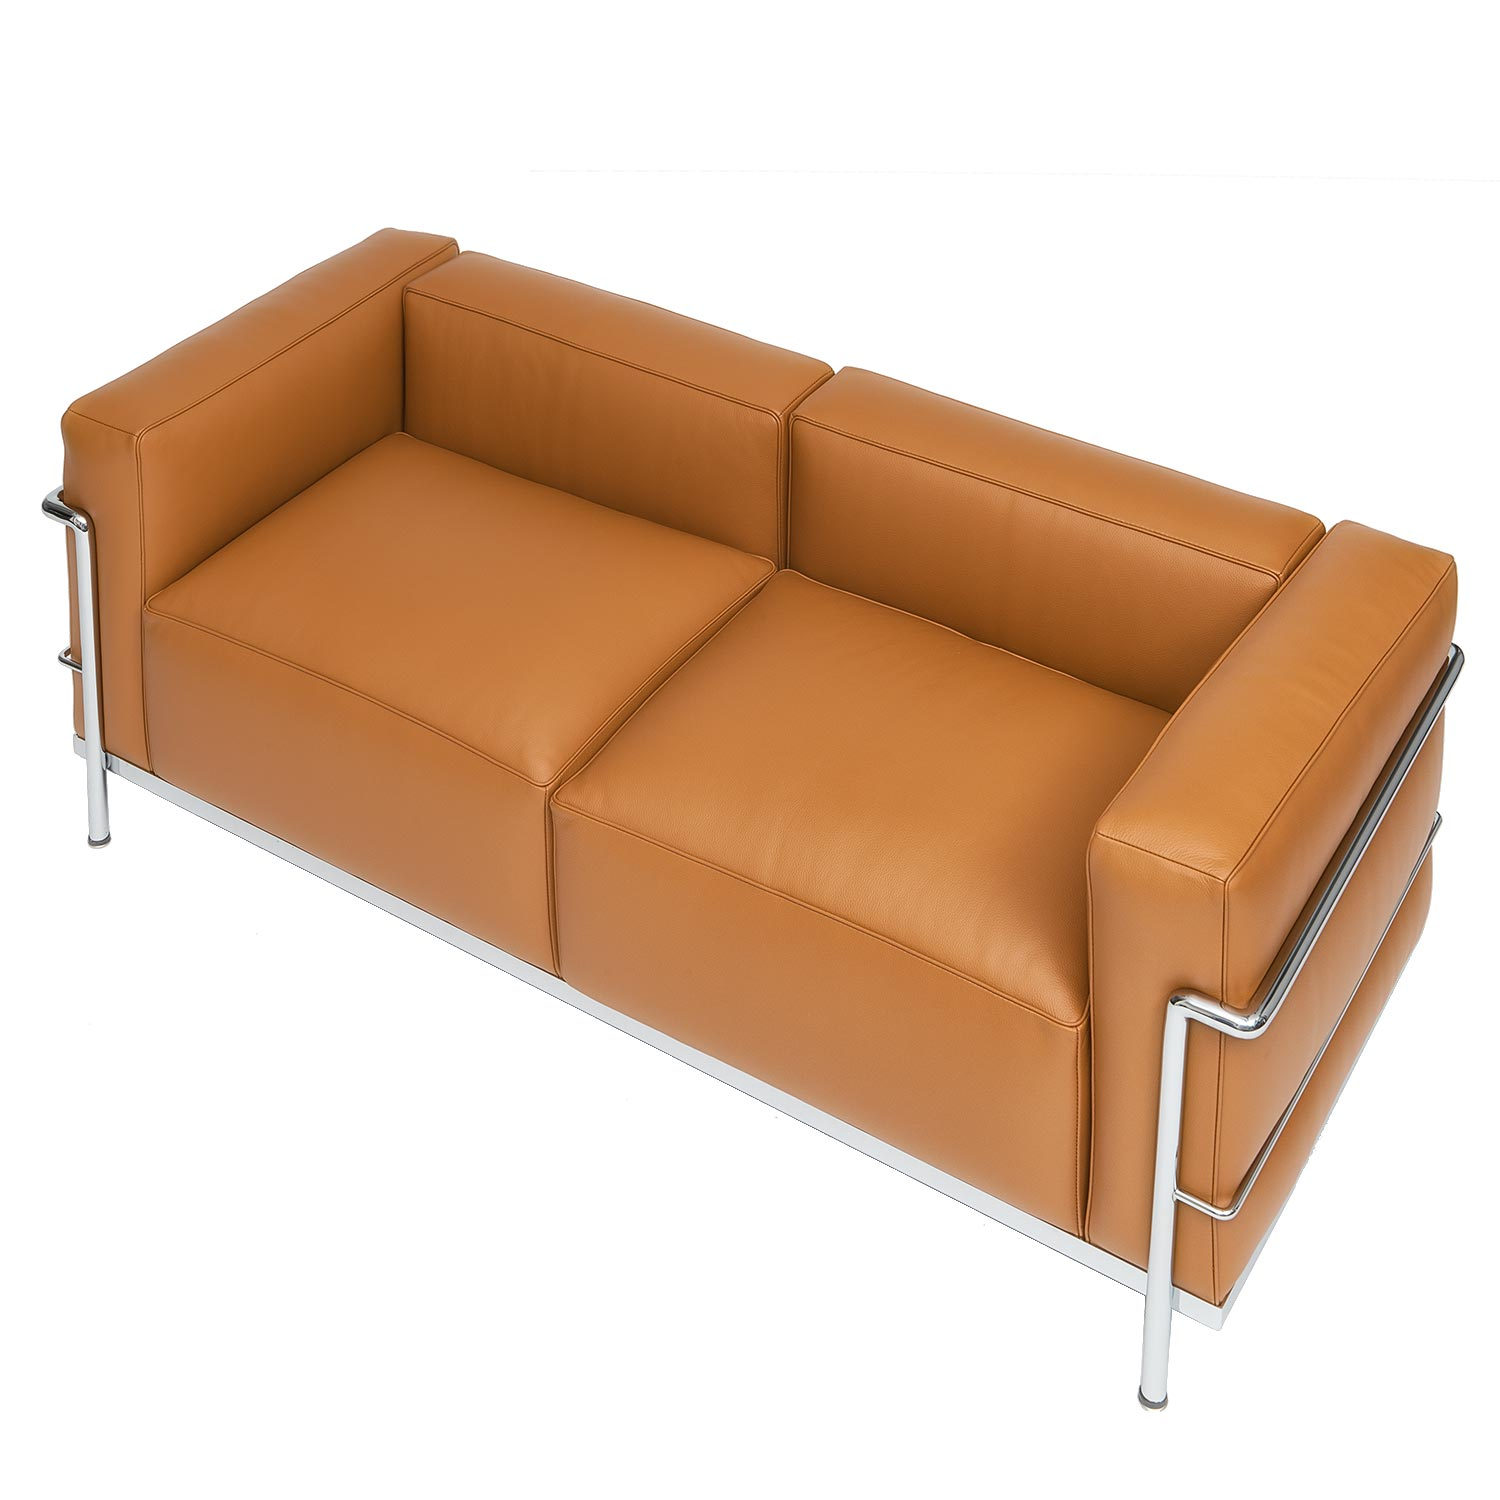 Sofa Le Corbusier Corbusier Designed Sofa Lc 32 | Steelform Design Classics